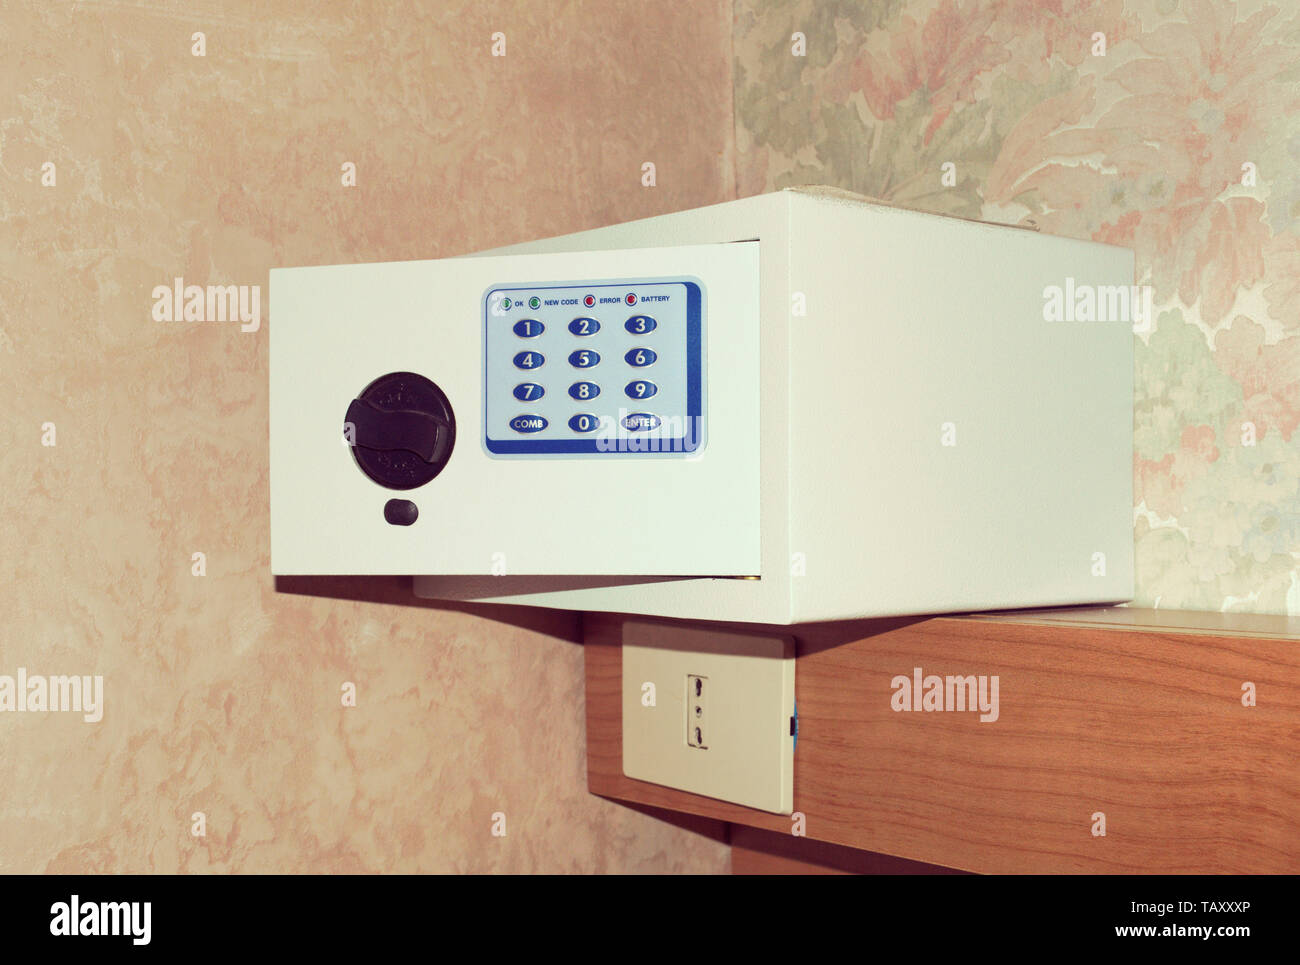 Hotel Room Safe Stock Photos & Hotel Room Safe Stock Images - Alamy